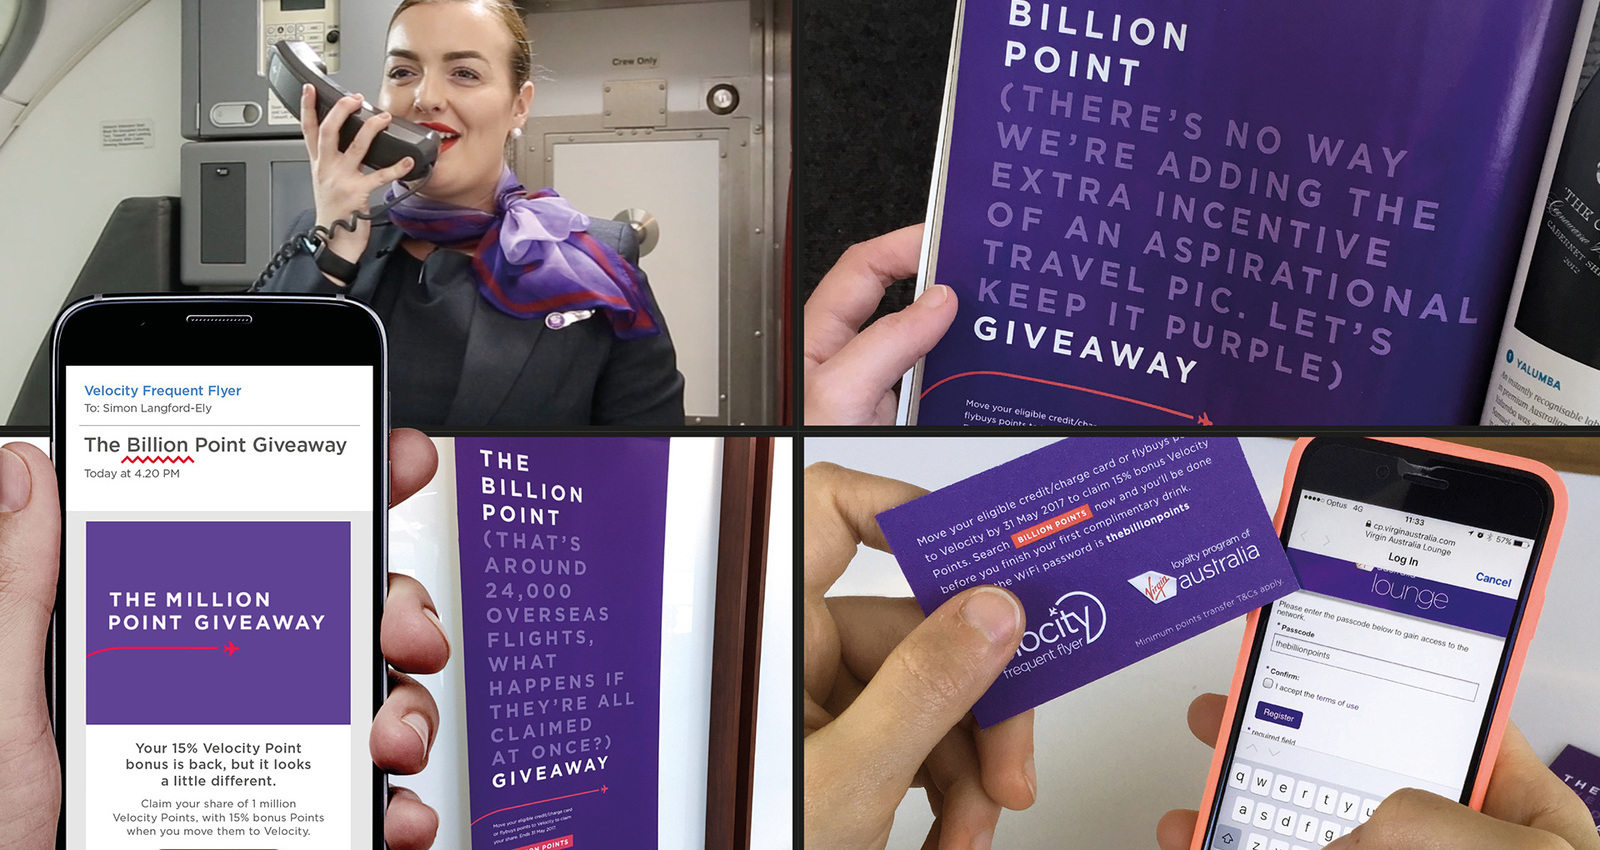 The Billion Point Giveaway